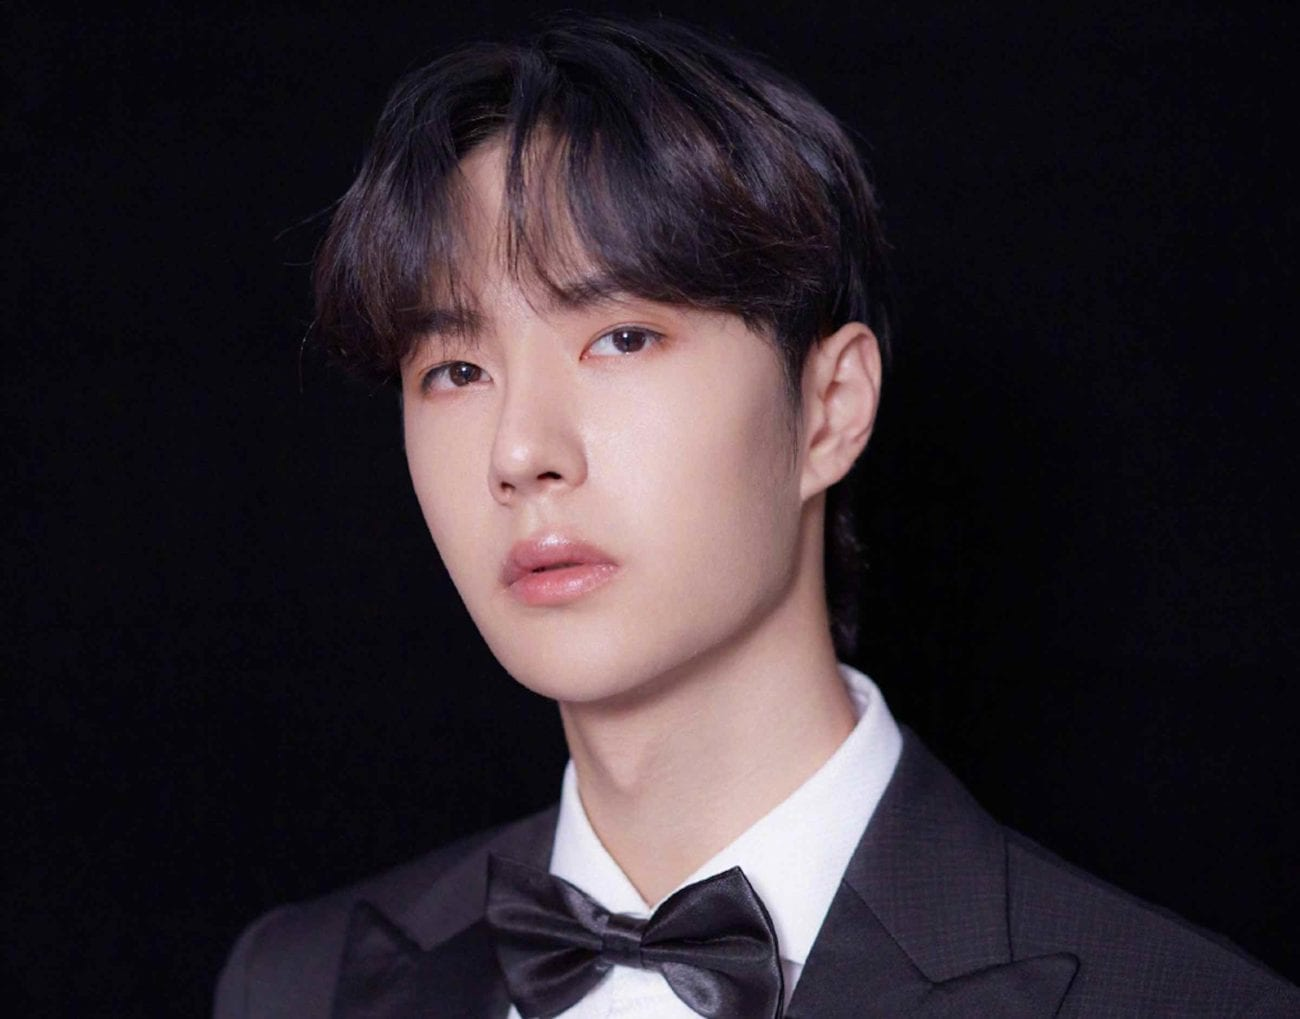 If you're new to the Wang Yibo train, welcome aboard and enjoy your ride. Let's get you acquainted with your newfound love of Wang Yibo.